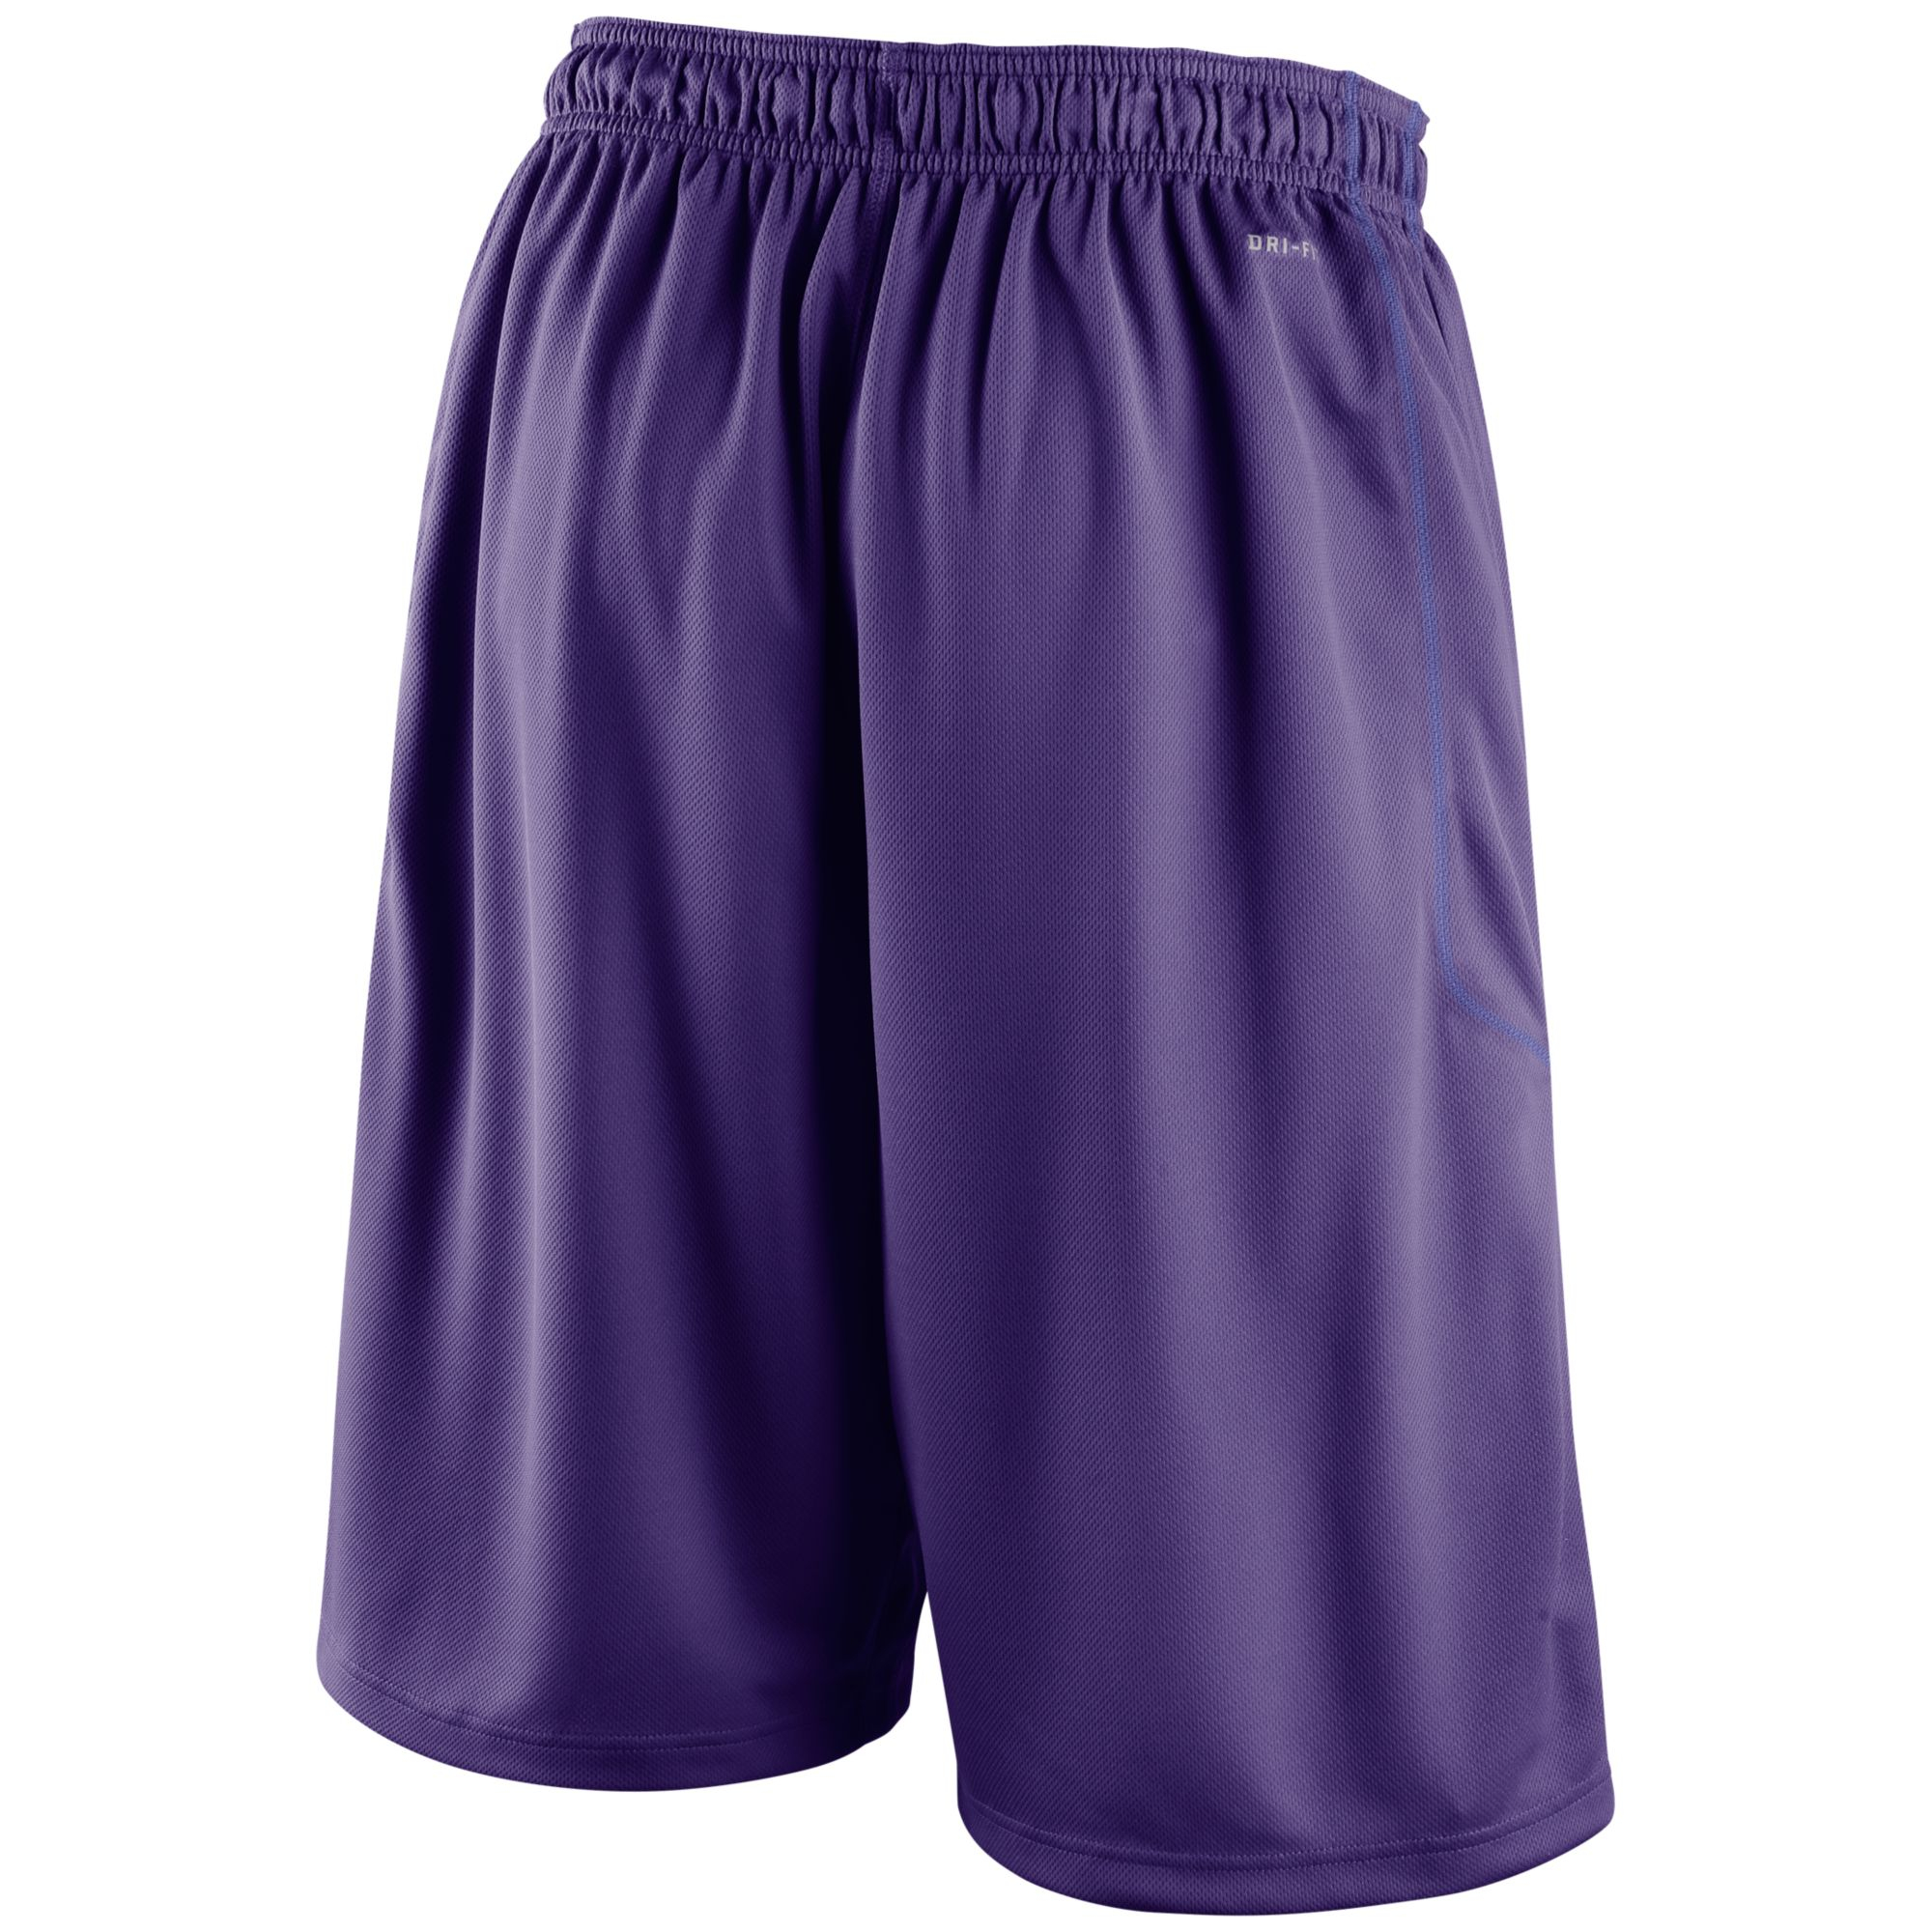 0ff5ee2a46c Lyst - Nike Mens Lsu Tigers Drifit Shorts in Purple for Men